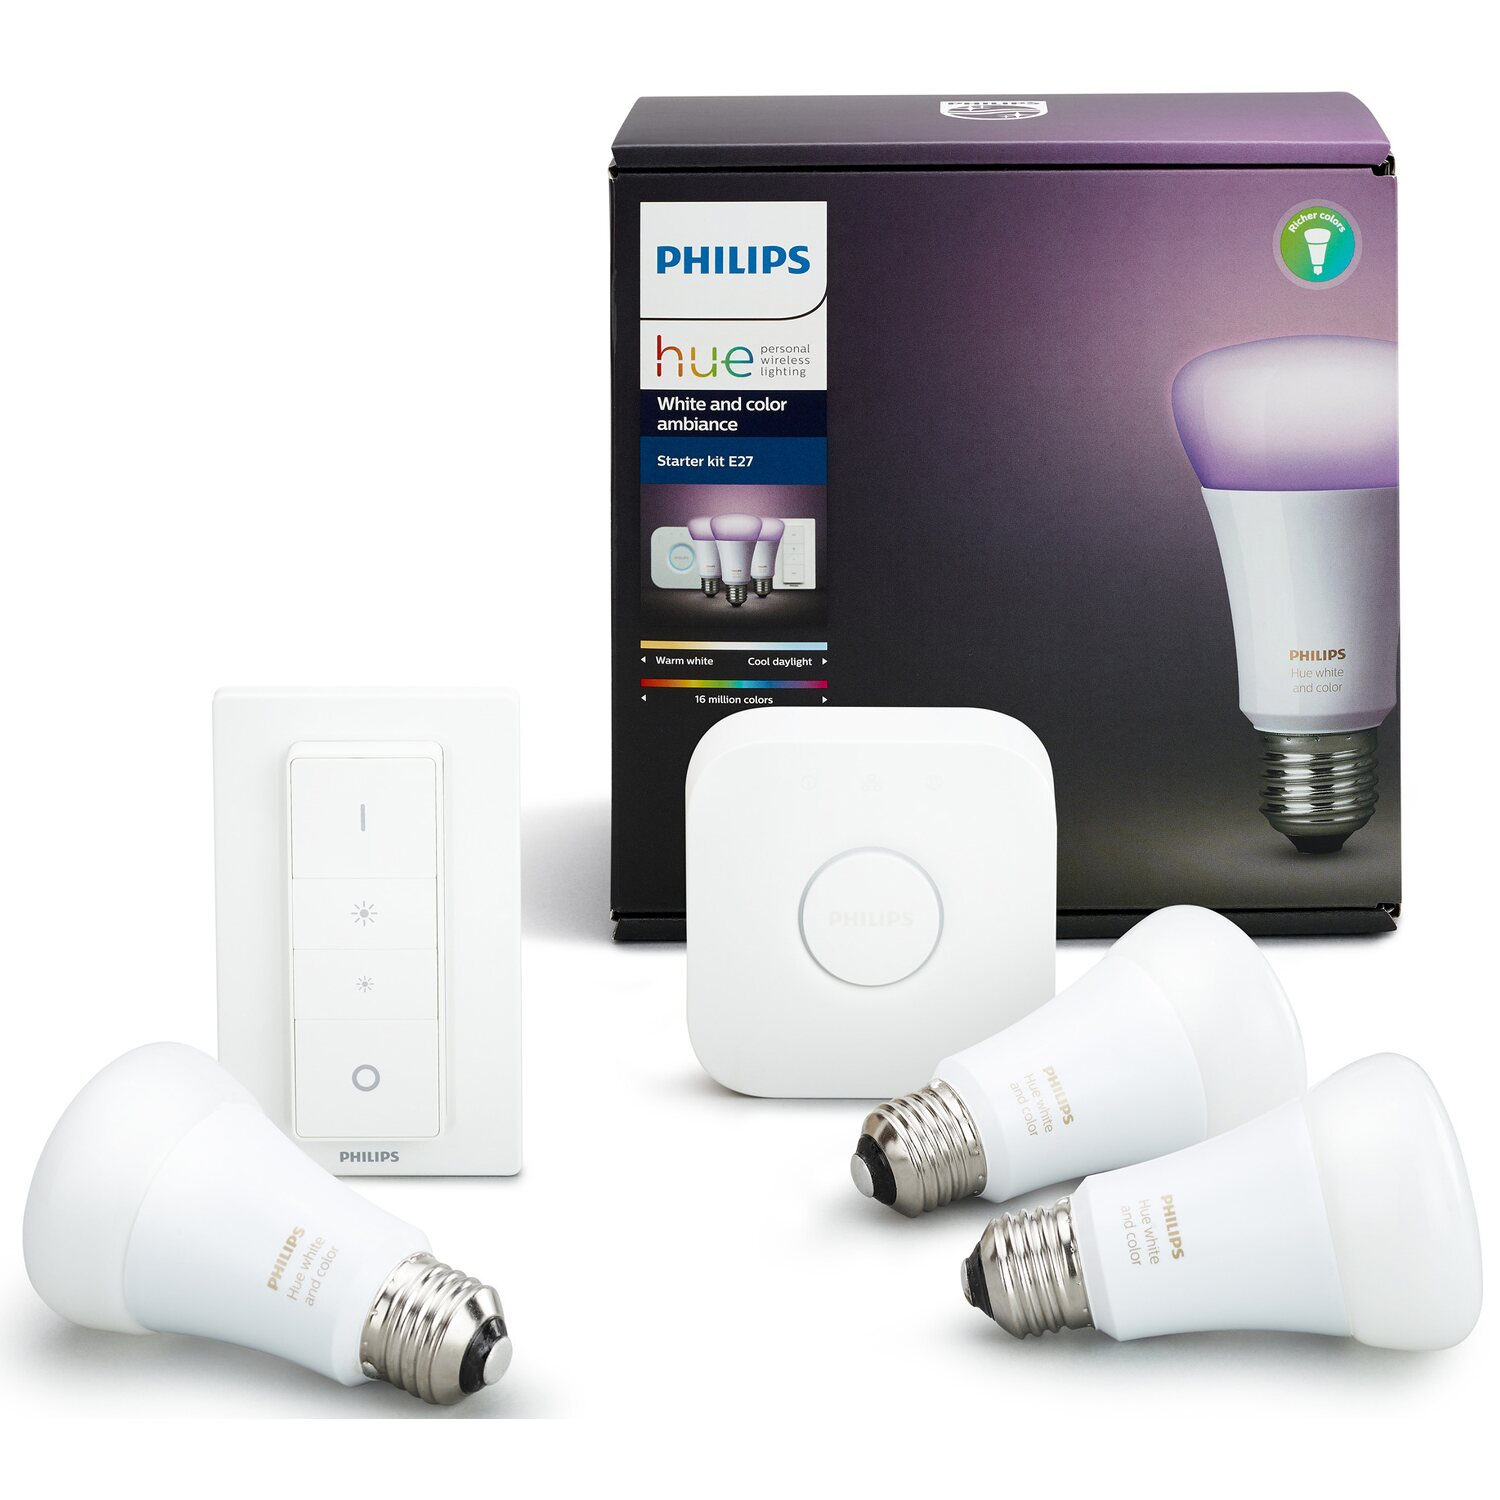 philips hue white color ambiance e27 led lampe starter set inkl dimmschalter kaufen bei obi. Black Bedroom Furniture Sets. Home Design Ideas